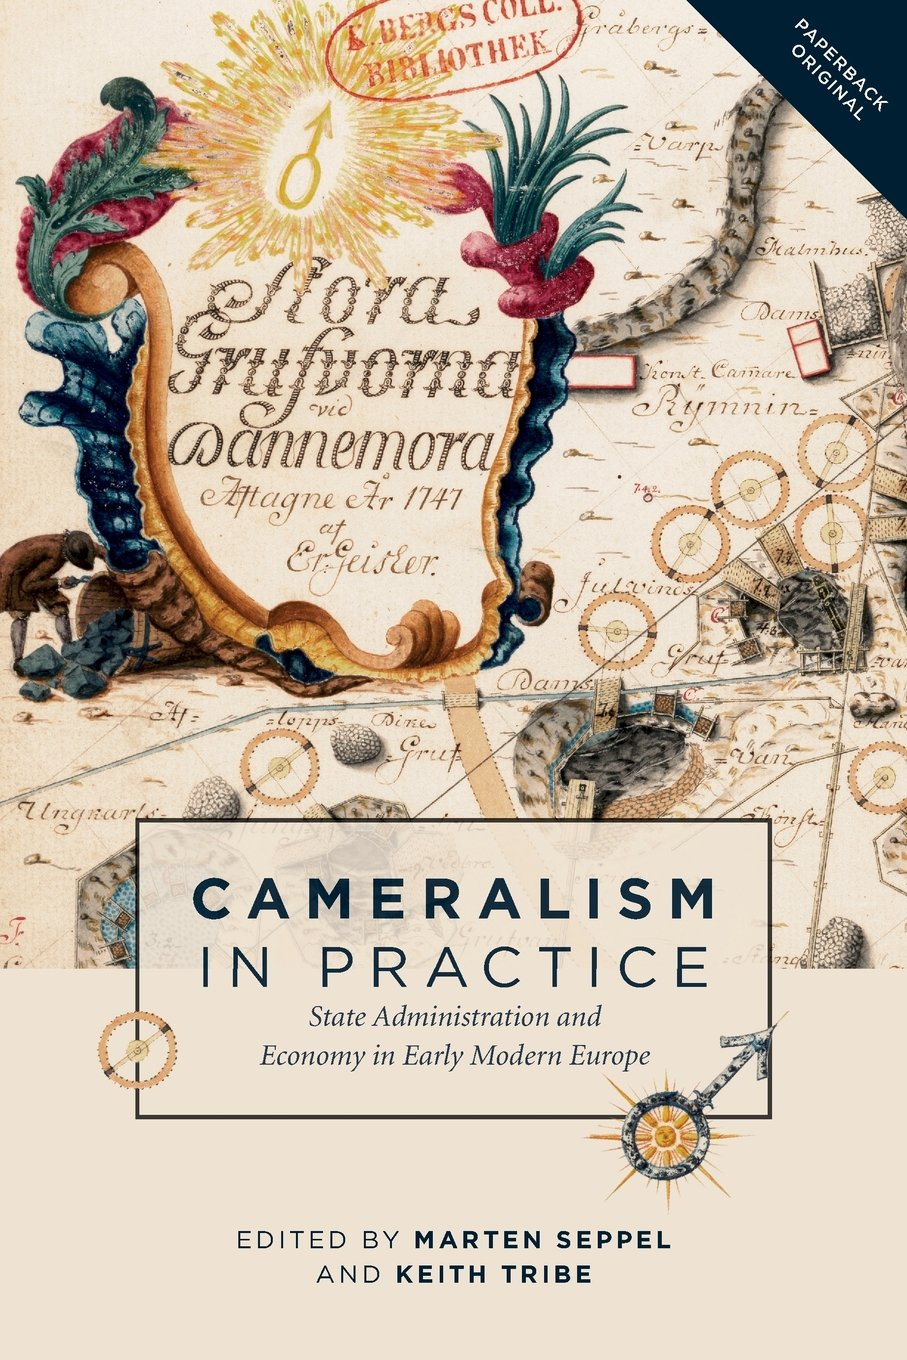 Cameralism in Practice: State Administration and Economy in Early Modern Europe: 10 (People, Markets, Goods: Economies and Societies in History)